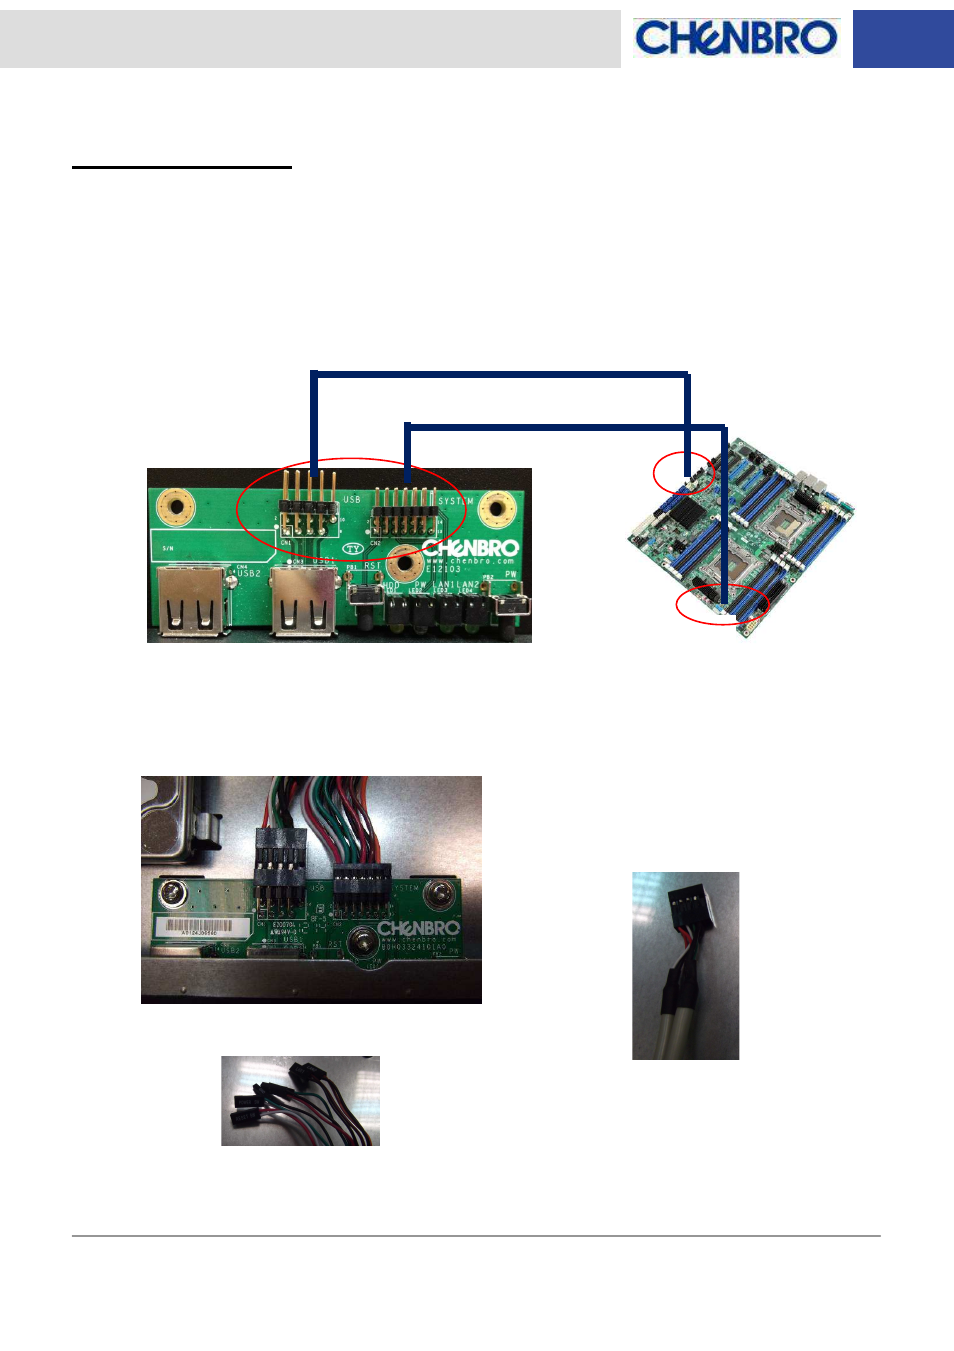 Led Board Wiring Chenbro Rm13604 Board80h03324101a0 Diagram Features And Jumper Settings Manual User Page 8